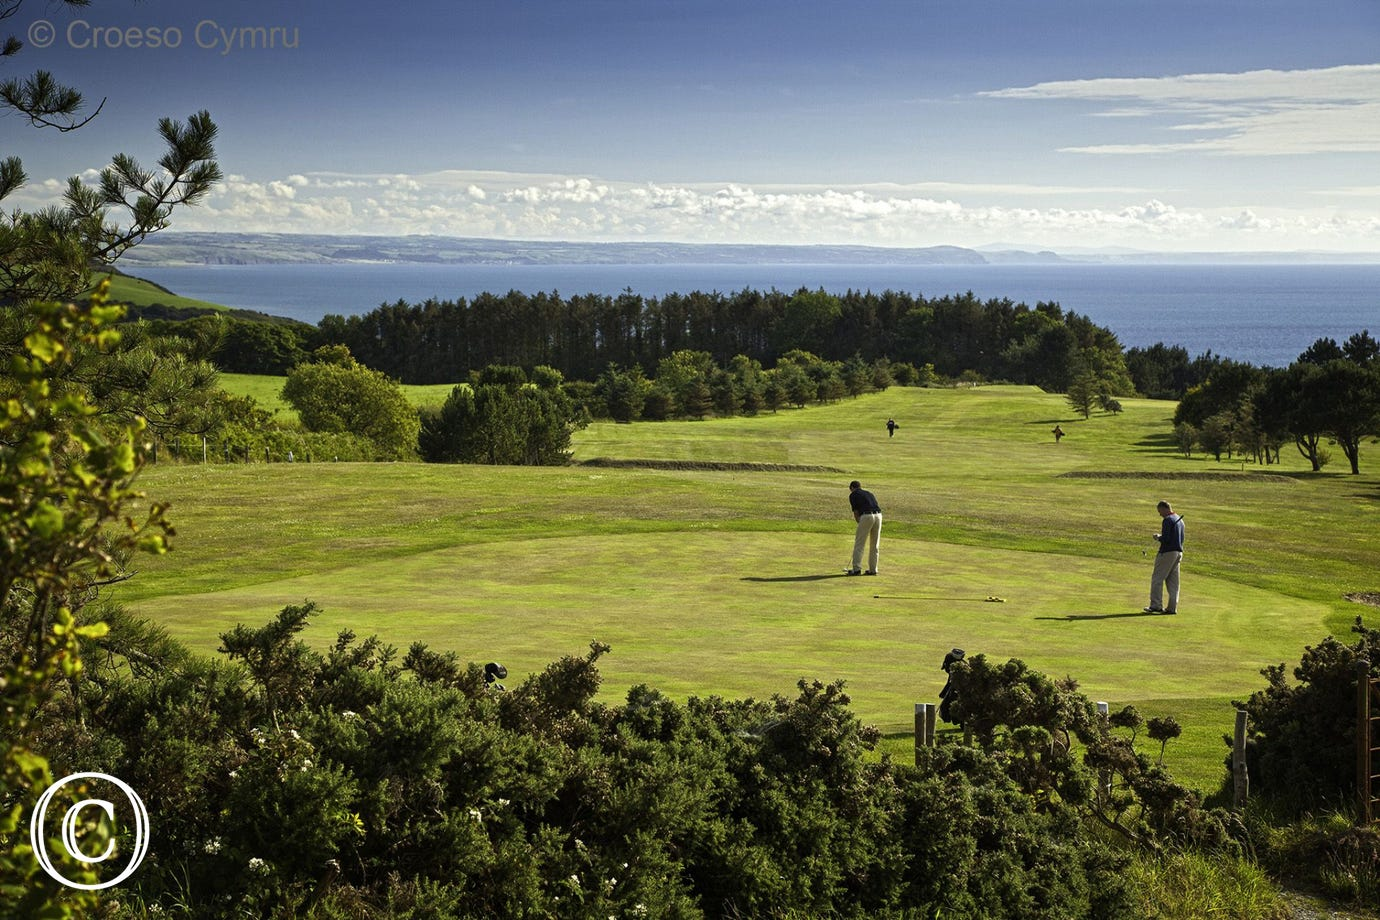 Enjoy a round of golf with amazing sea views at Aberystwyth Golf Club